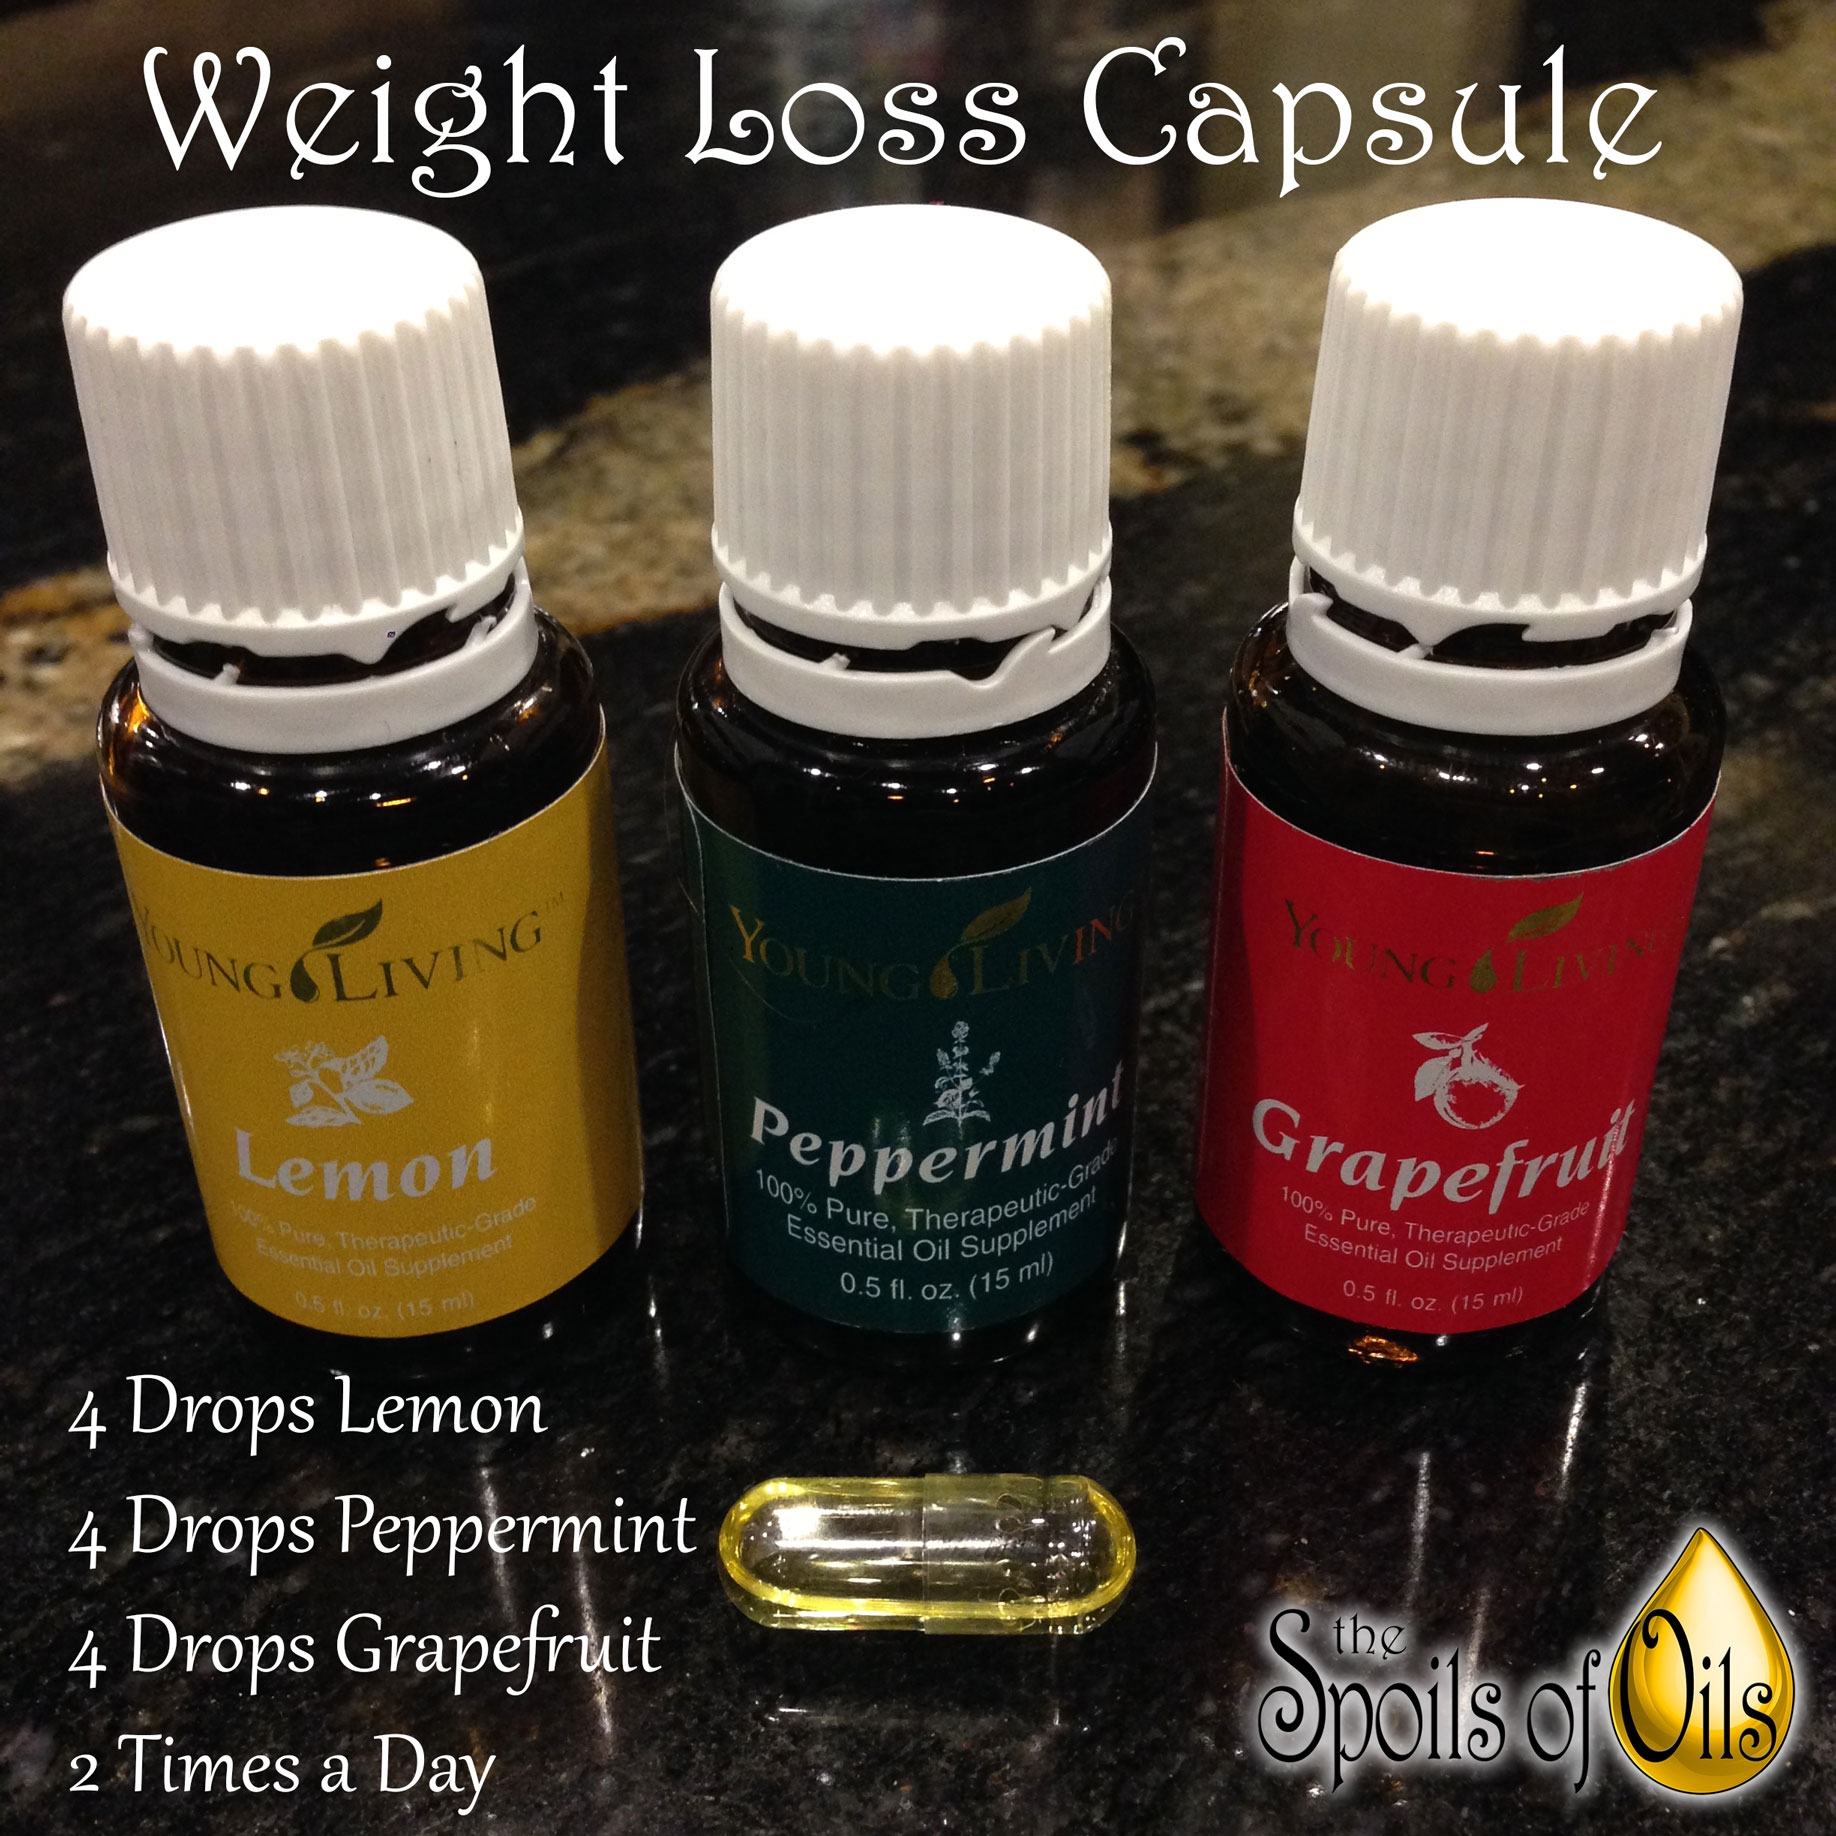 Weight Loss Capsule Combine Lemon Peppermint And Grapefruit